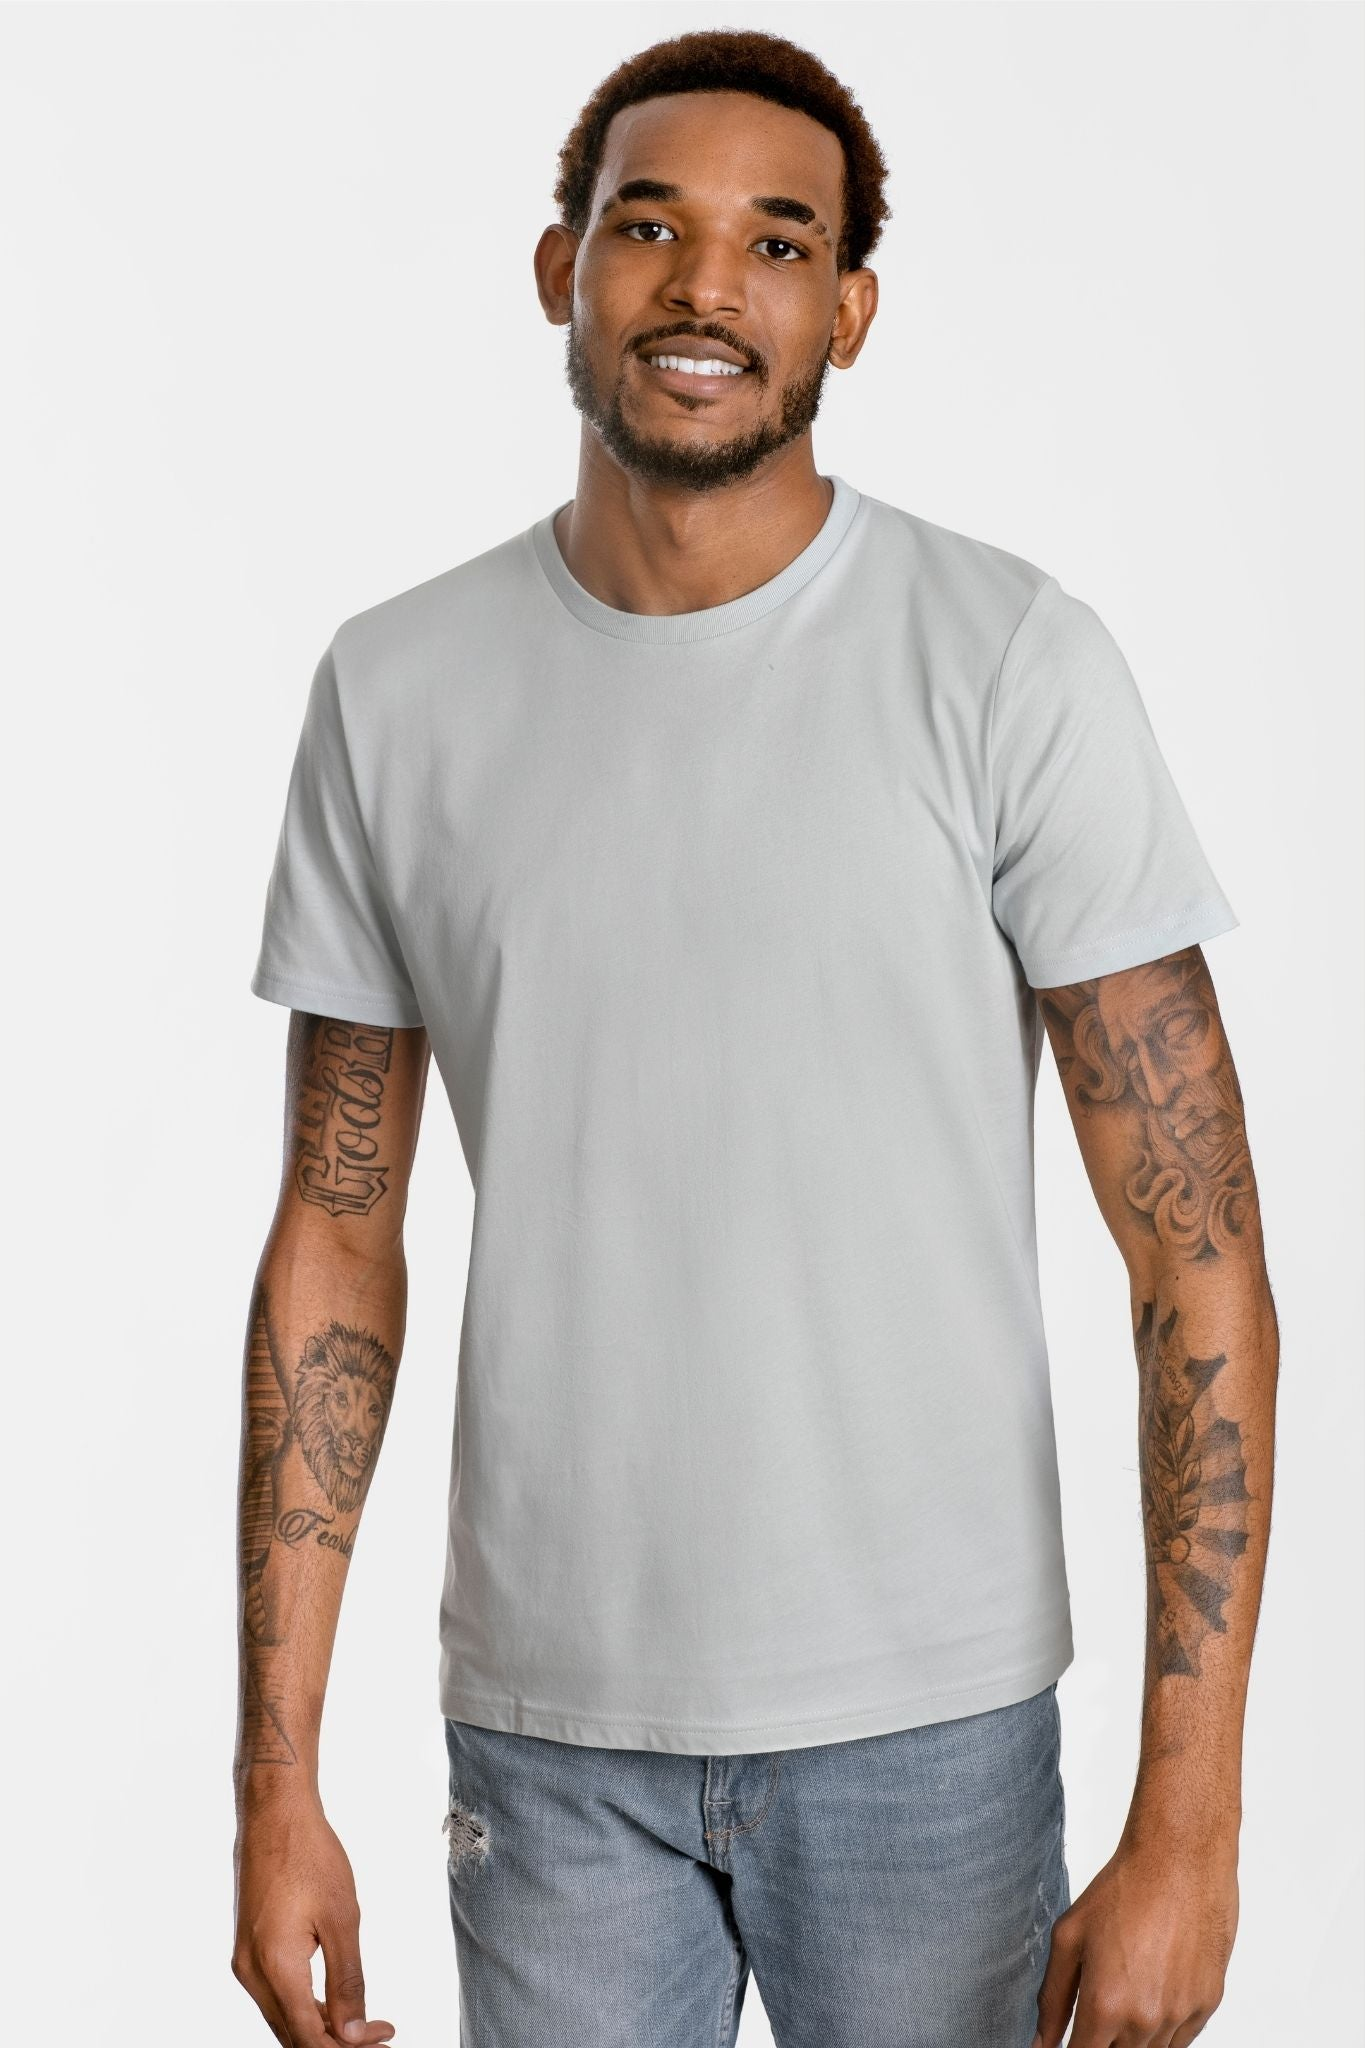 GOLD COTTON Unisex Organic Short Sleeve Tee in Stone